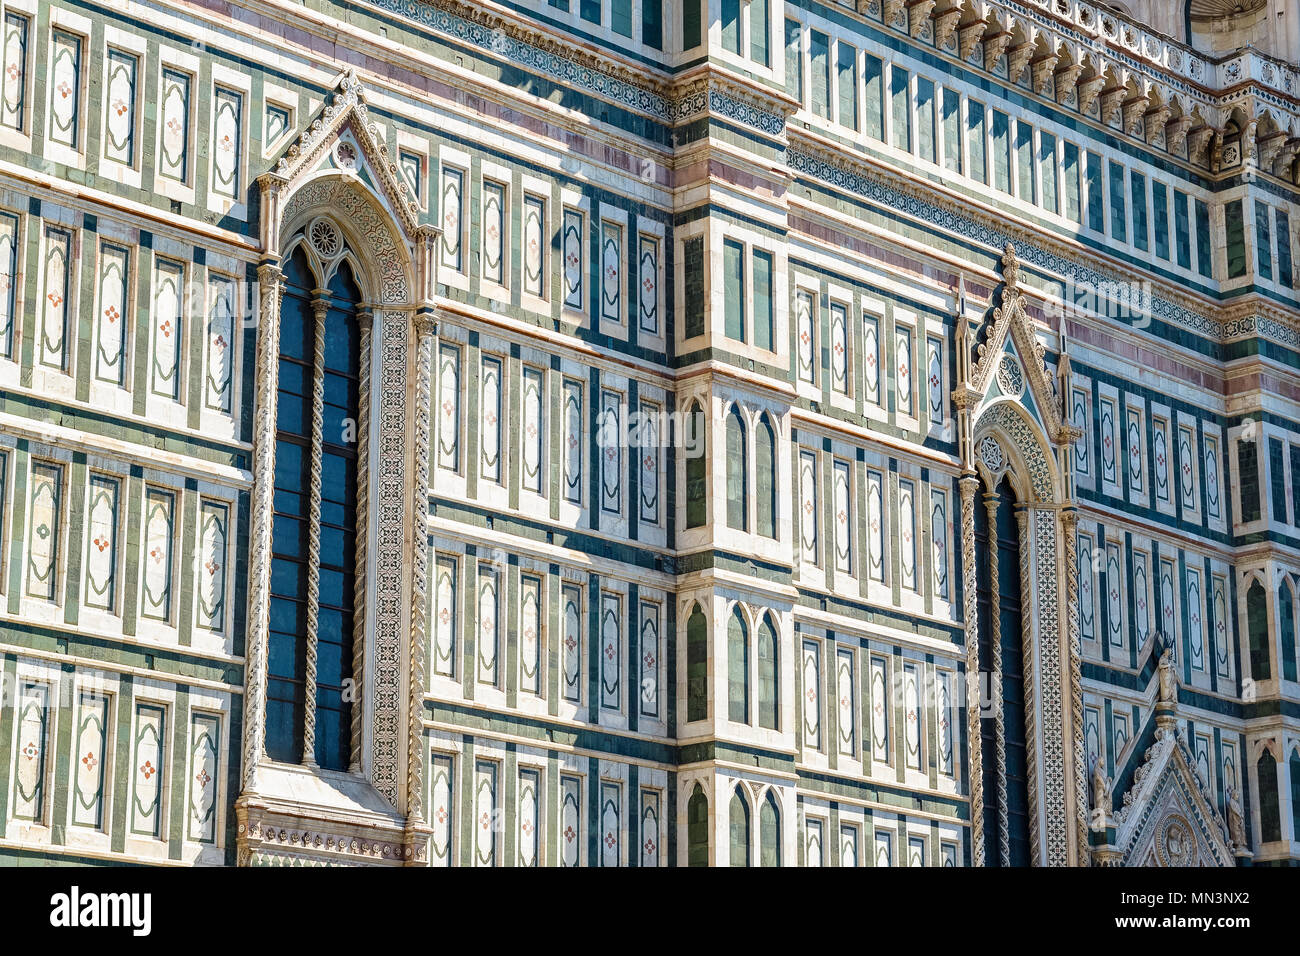 Exterior of the Cattedrale di Santa Maria del Fiore (Cathedral of Saint Mary of the Flower) in Florence, Italy Stock Photo